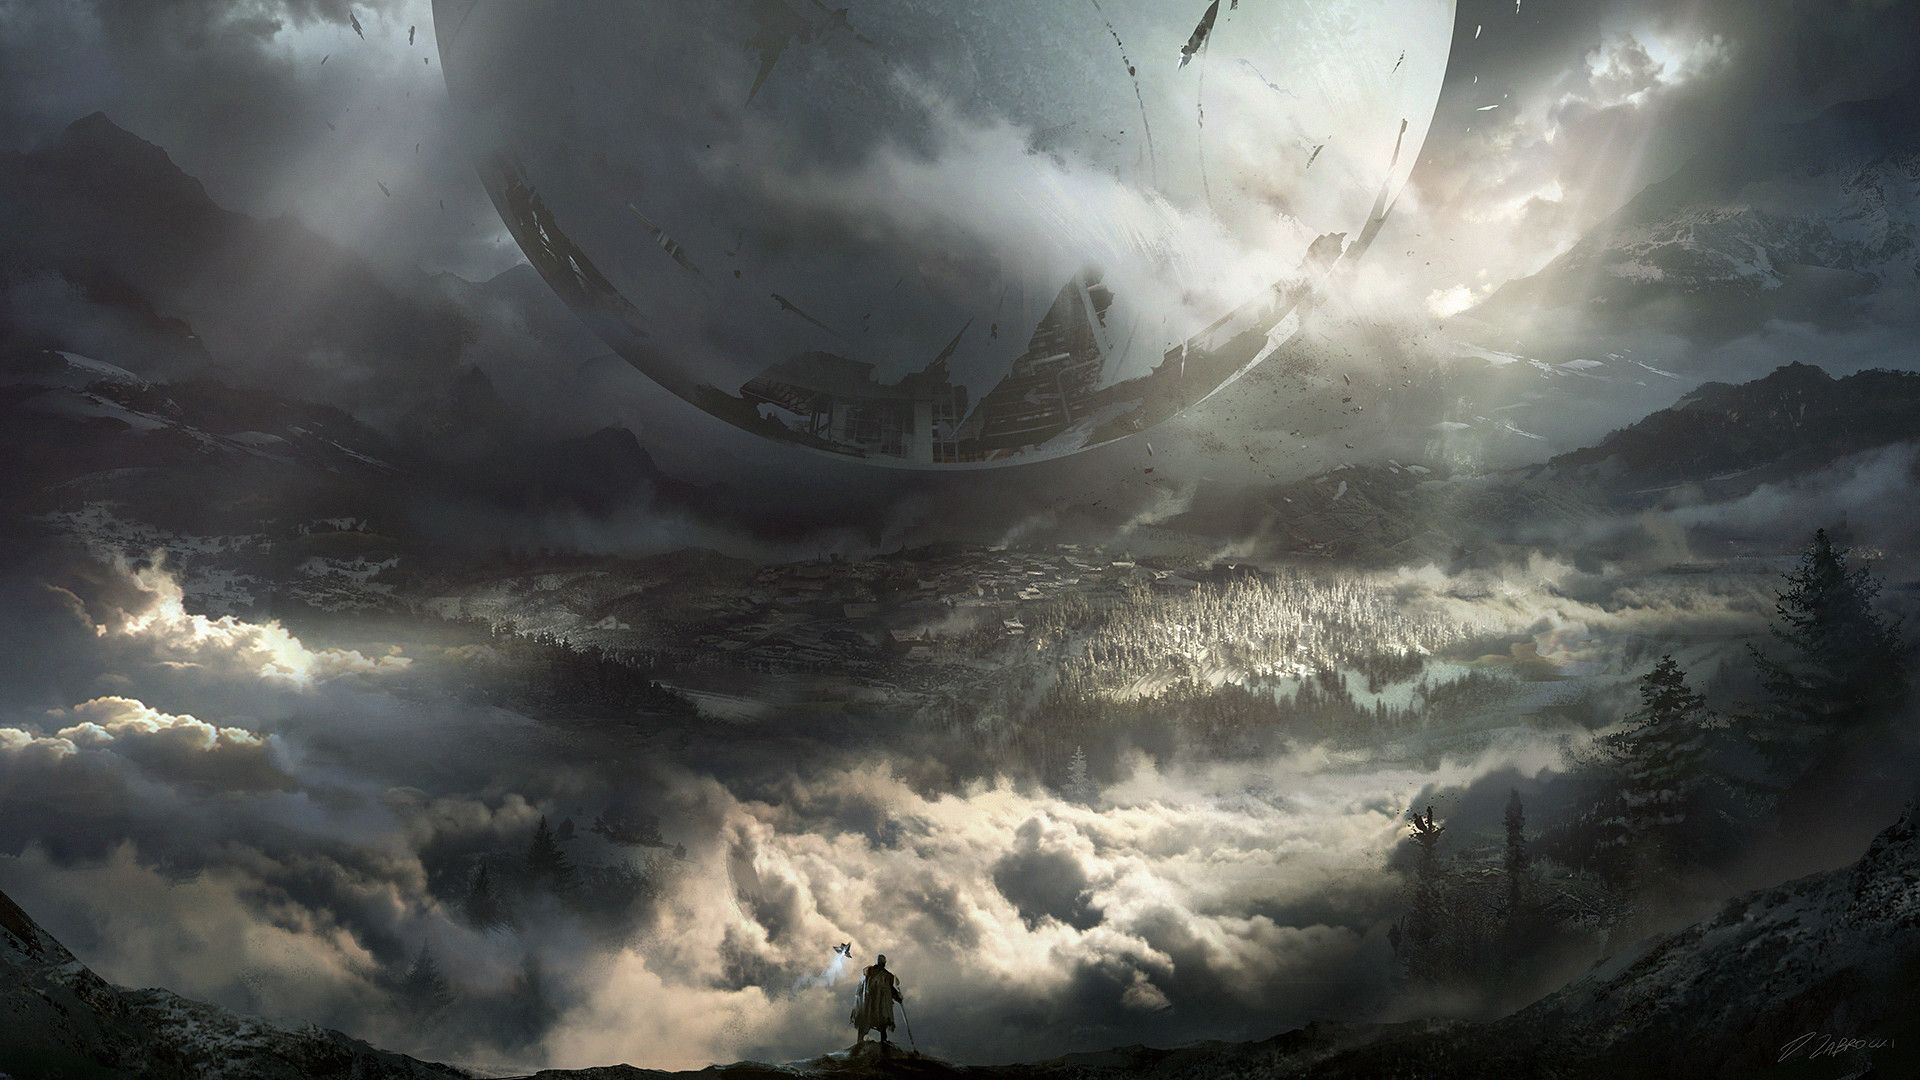 Some Of My Favorite Destiny 2 Wallpapers From The Recent Concept Art Release And The E3 Conference Album On Concept Art World Concept Art Destiny Backgrounds